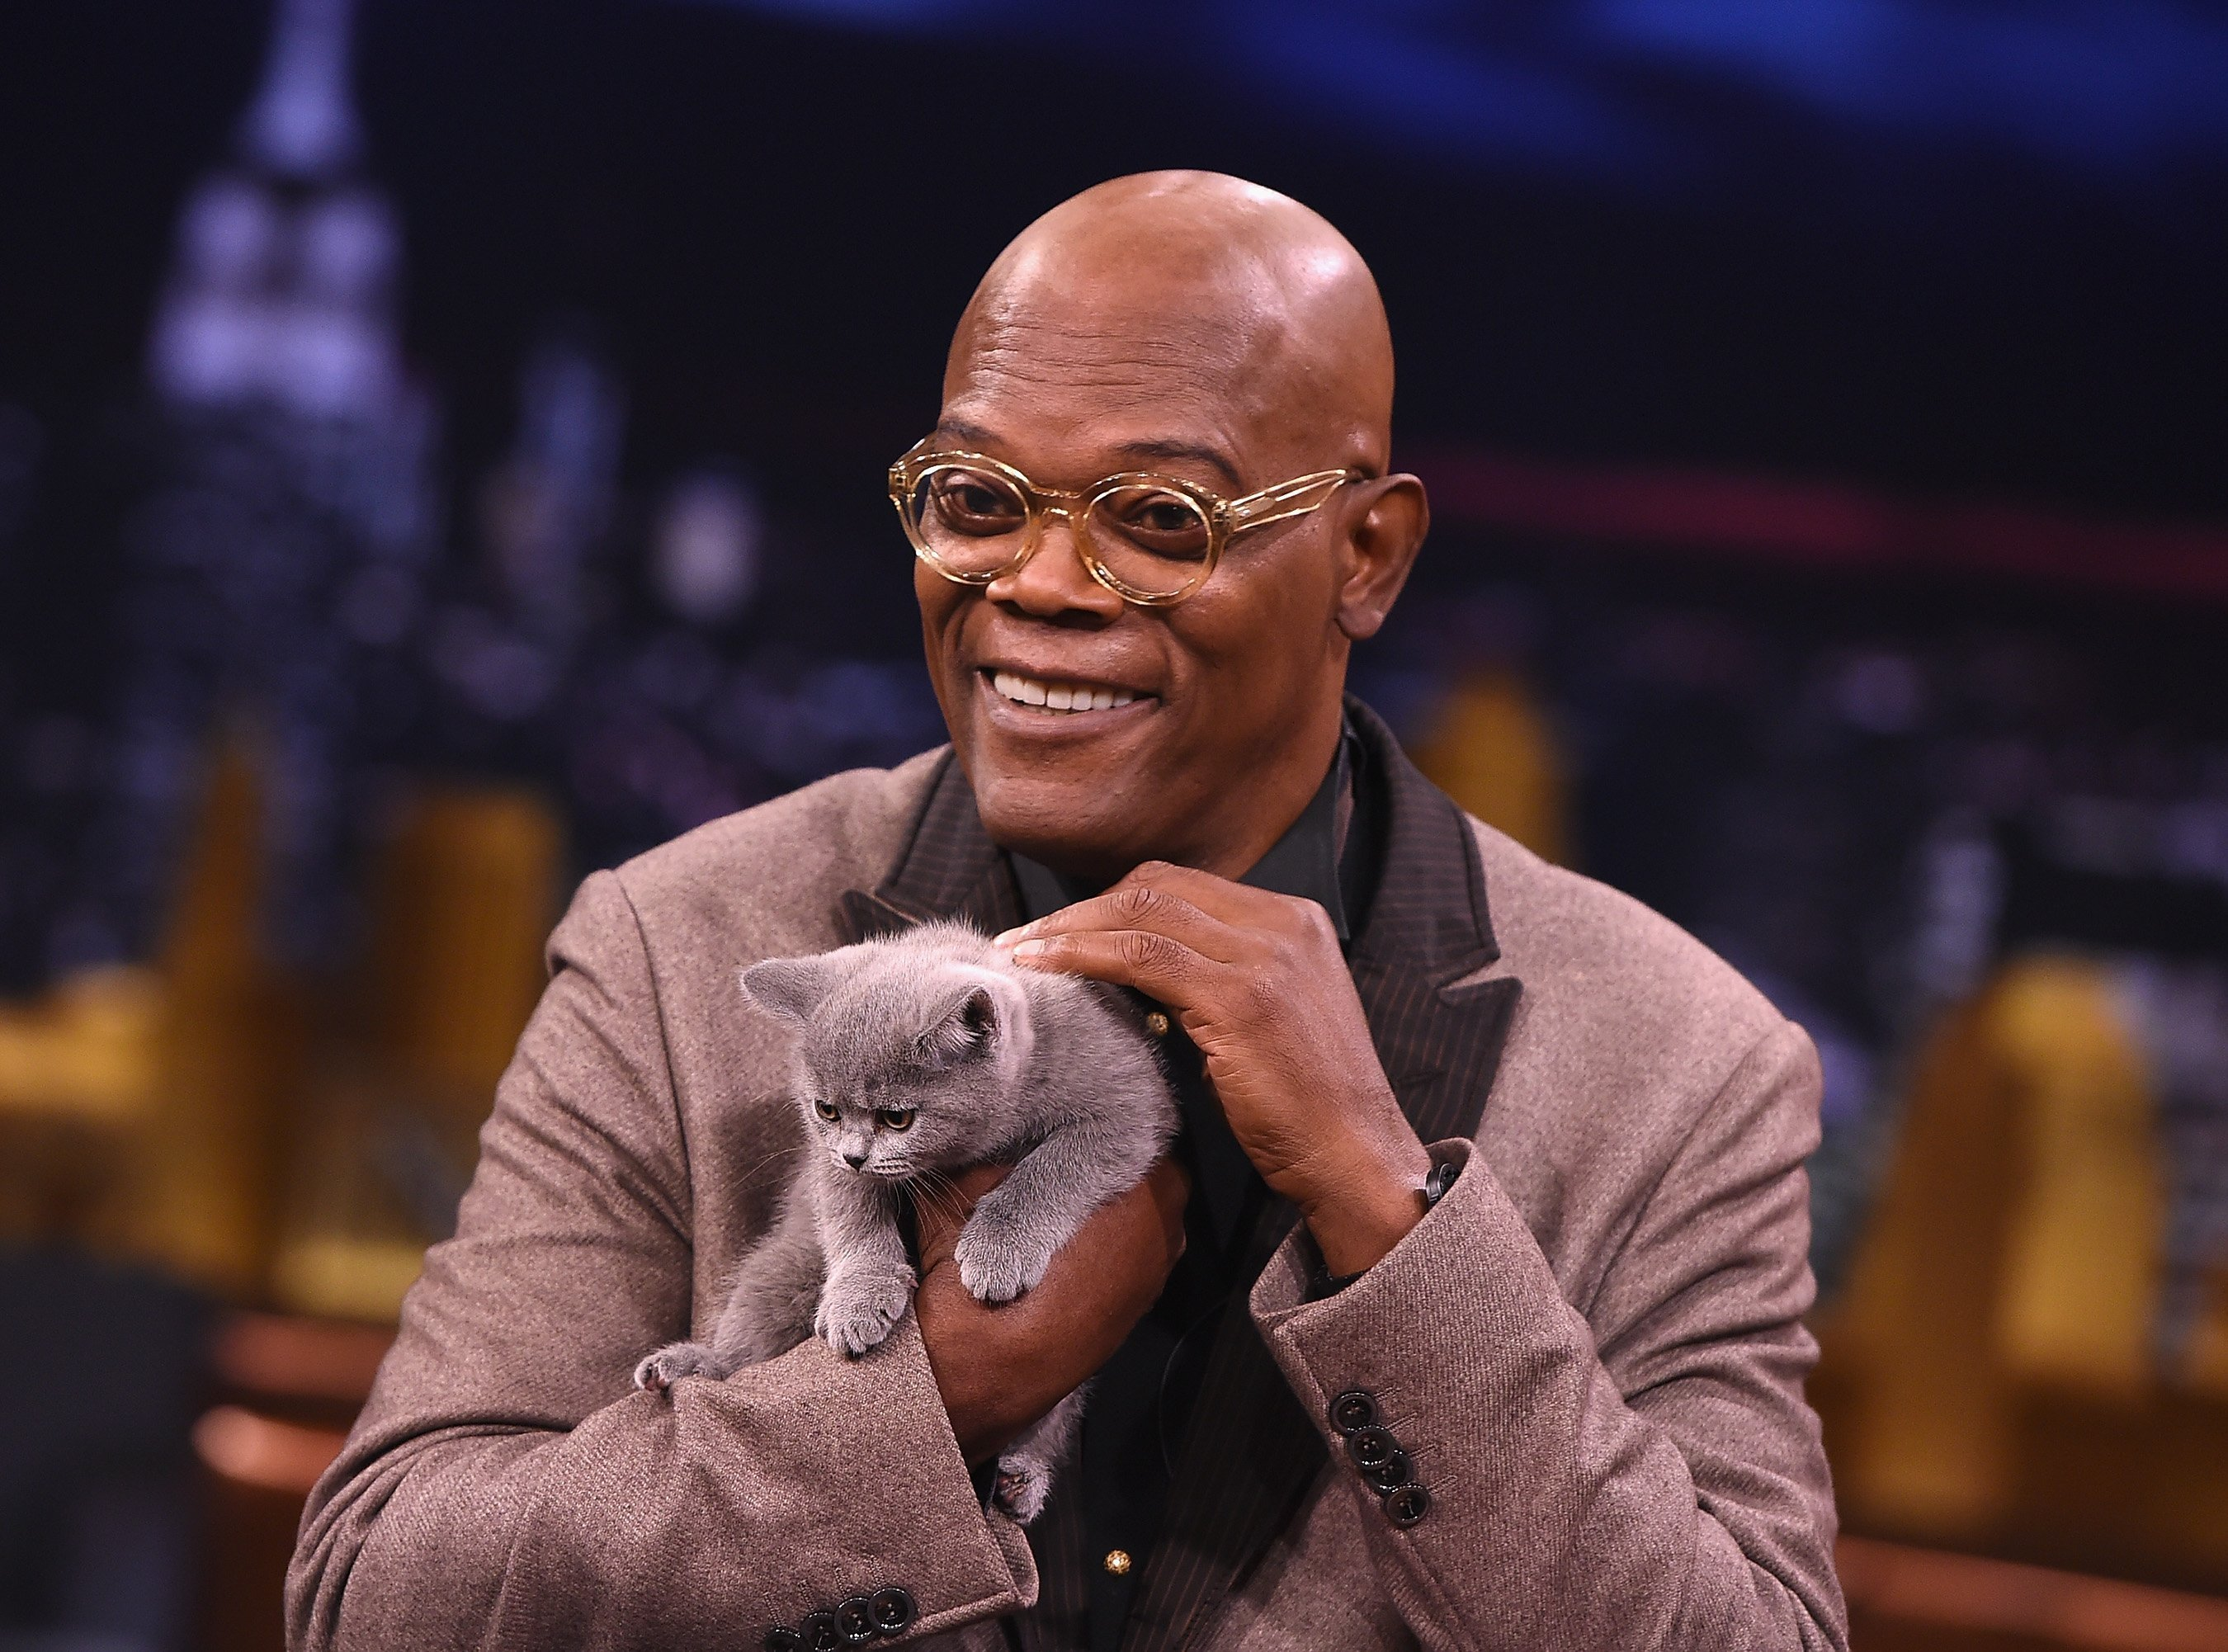 Samuel L Jackson holding a cat | Photo: Getty Images